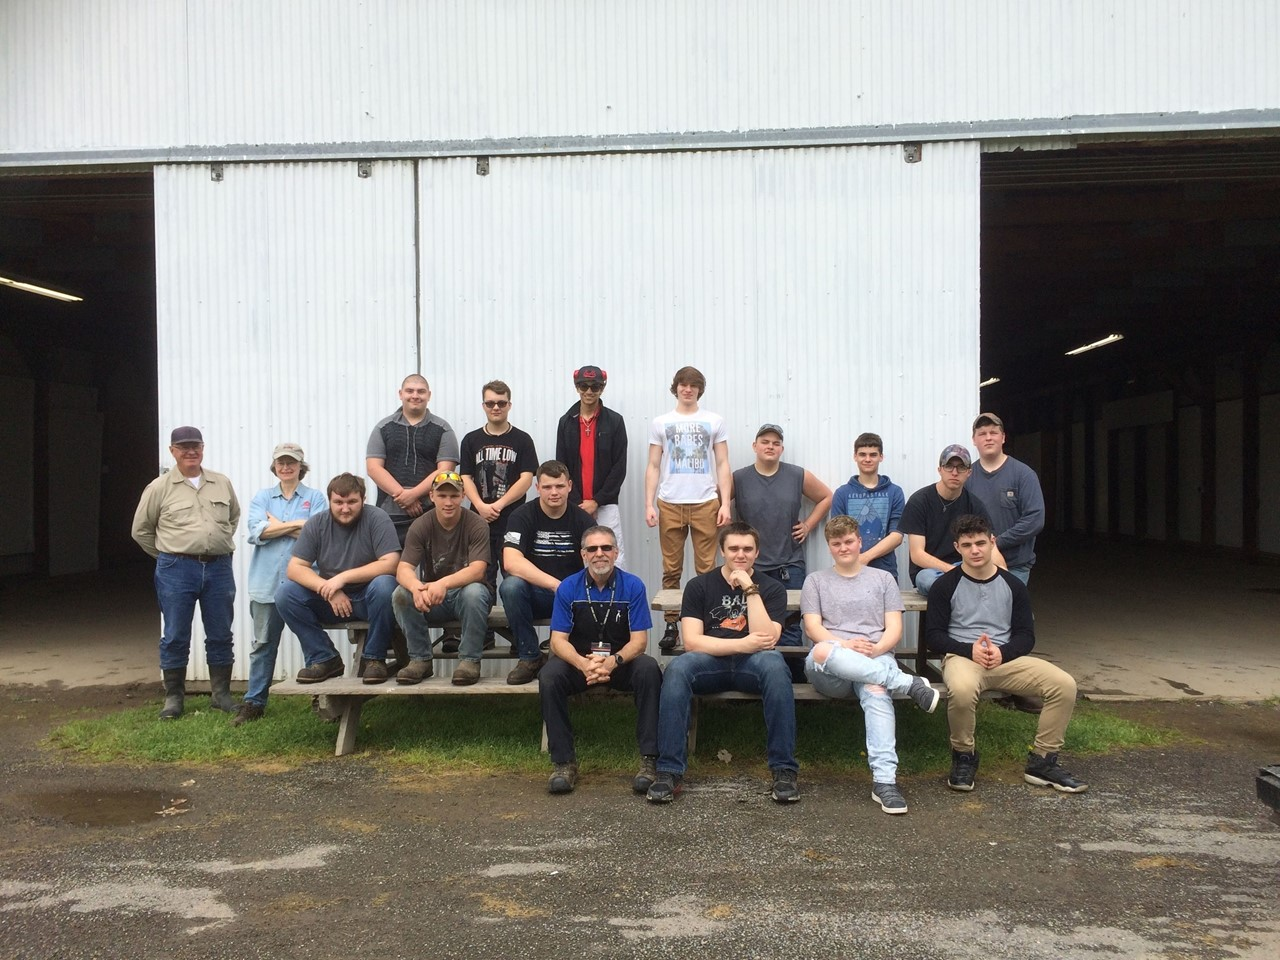 group photo of auto technology students